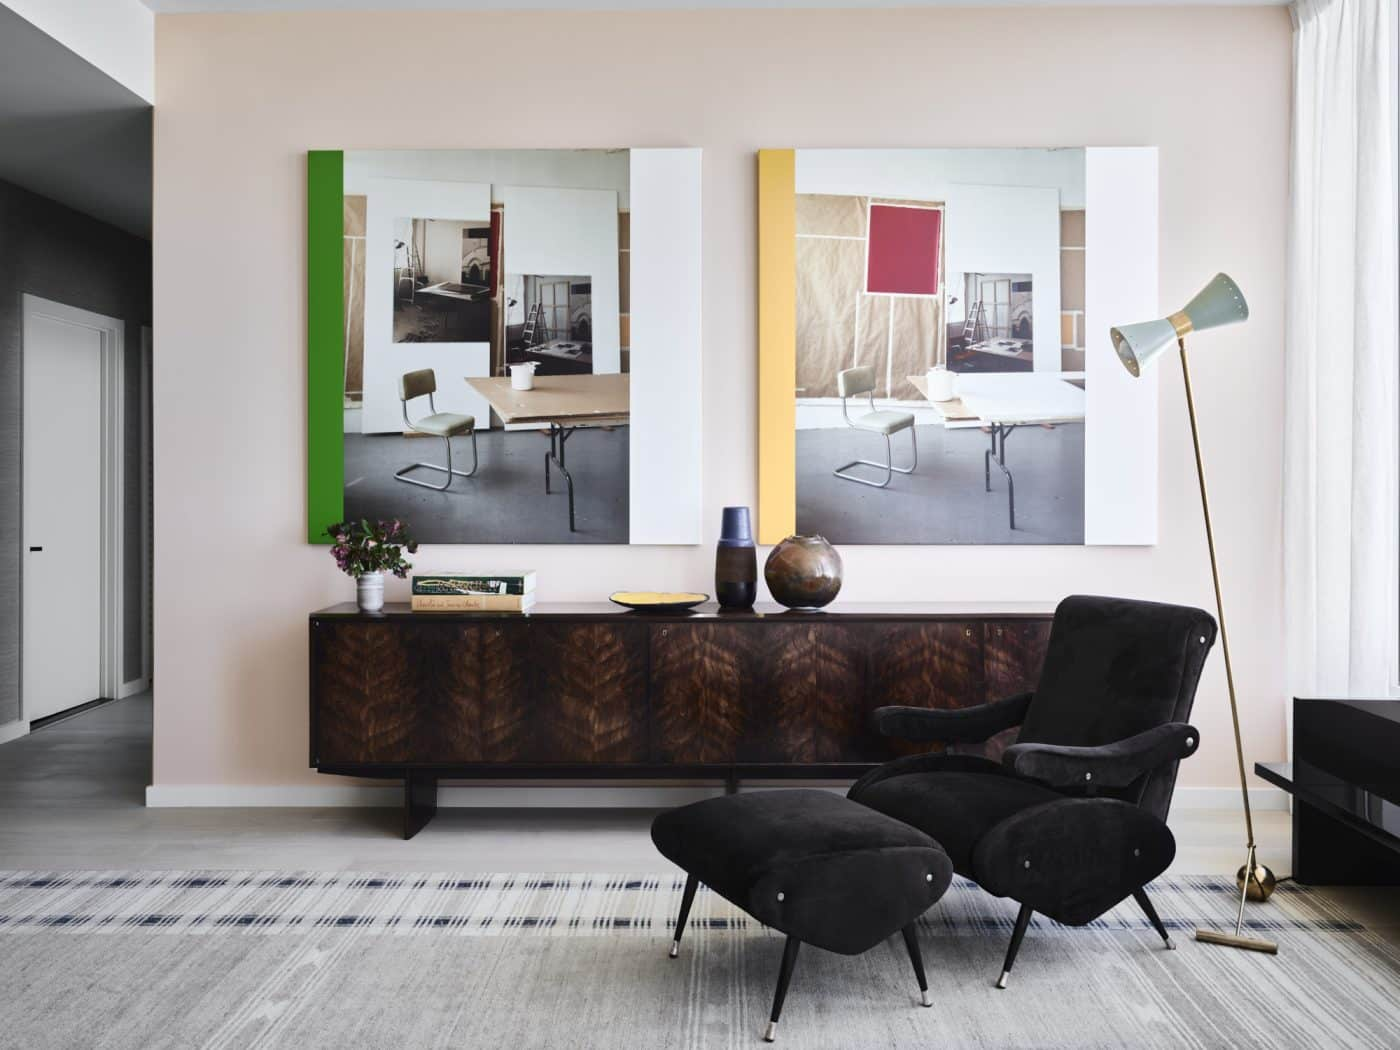 An Osvaldo Borsani armchair and ottoman and aJoaquim Tenreiro jacaranda sideboard in the living room of Gabriel & Guillaume's staged apartment at Fifteen Fifty in San Francisco